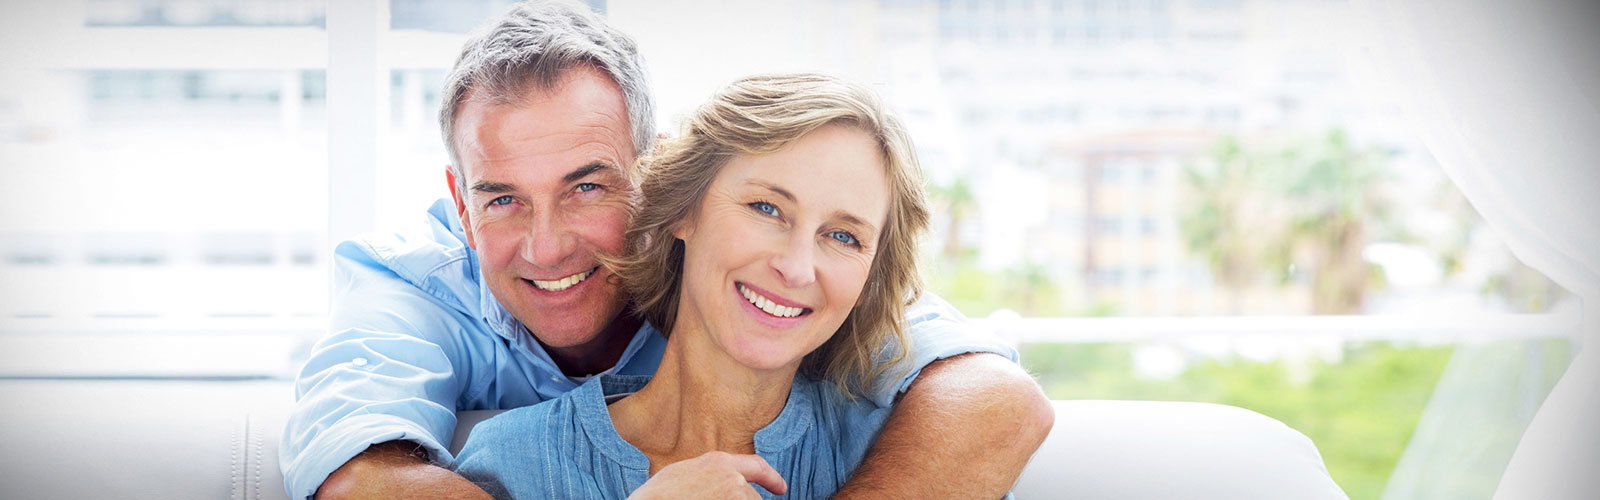 Information For Patients | Imaging Specialists of Glendale